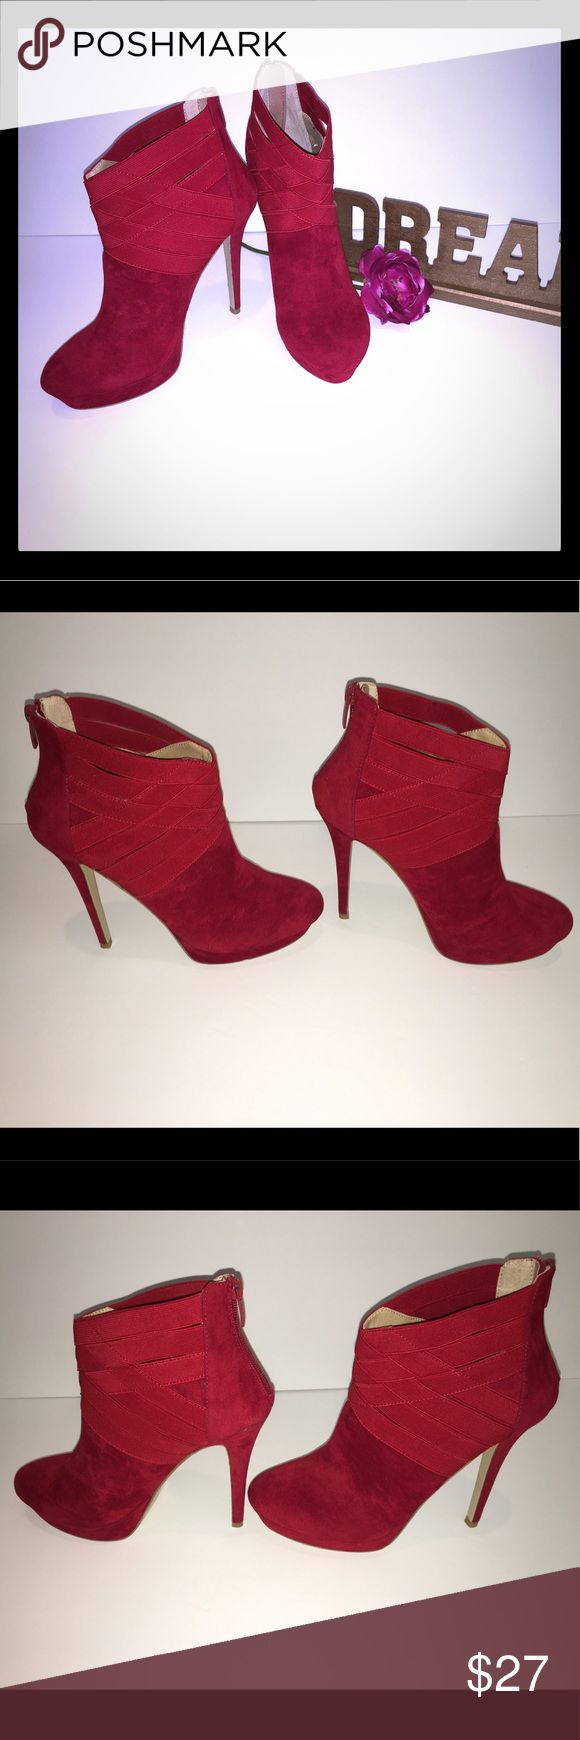 Colin Stuart Red Platform Suede Heels Booties These Colin Stuart Red Platform Faux  Heel Booties are absolutely beautiful. The zipper back with the stretchable adornment makes these high heel shoes easy to slide on.   Size 8.5 No box From a pet free smoke free home Colin Stuart Shoes Heels